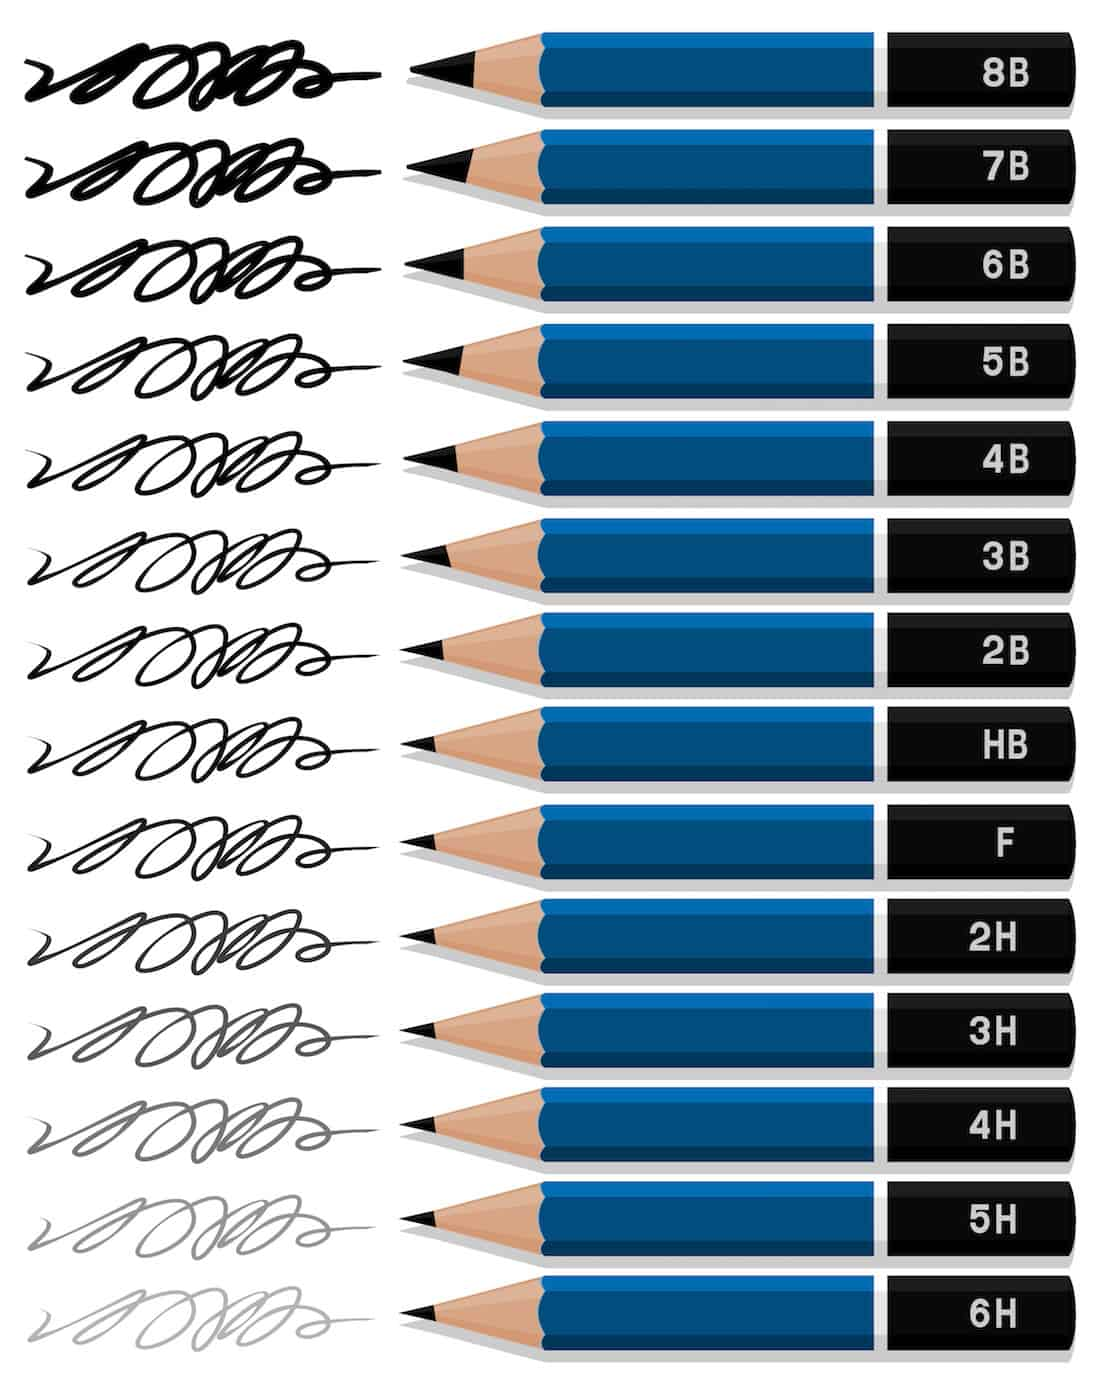 Types of pencils chart